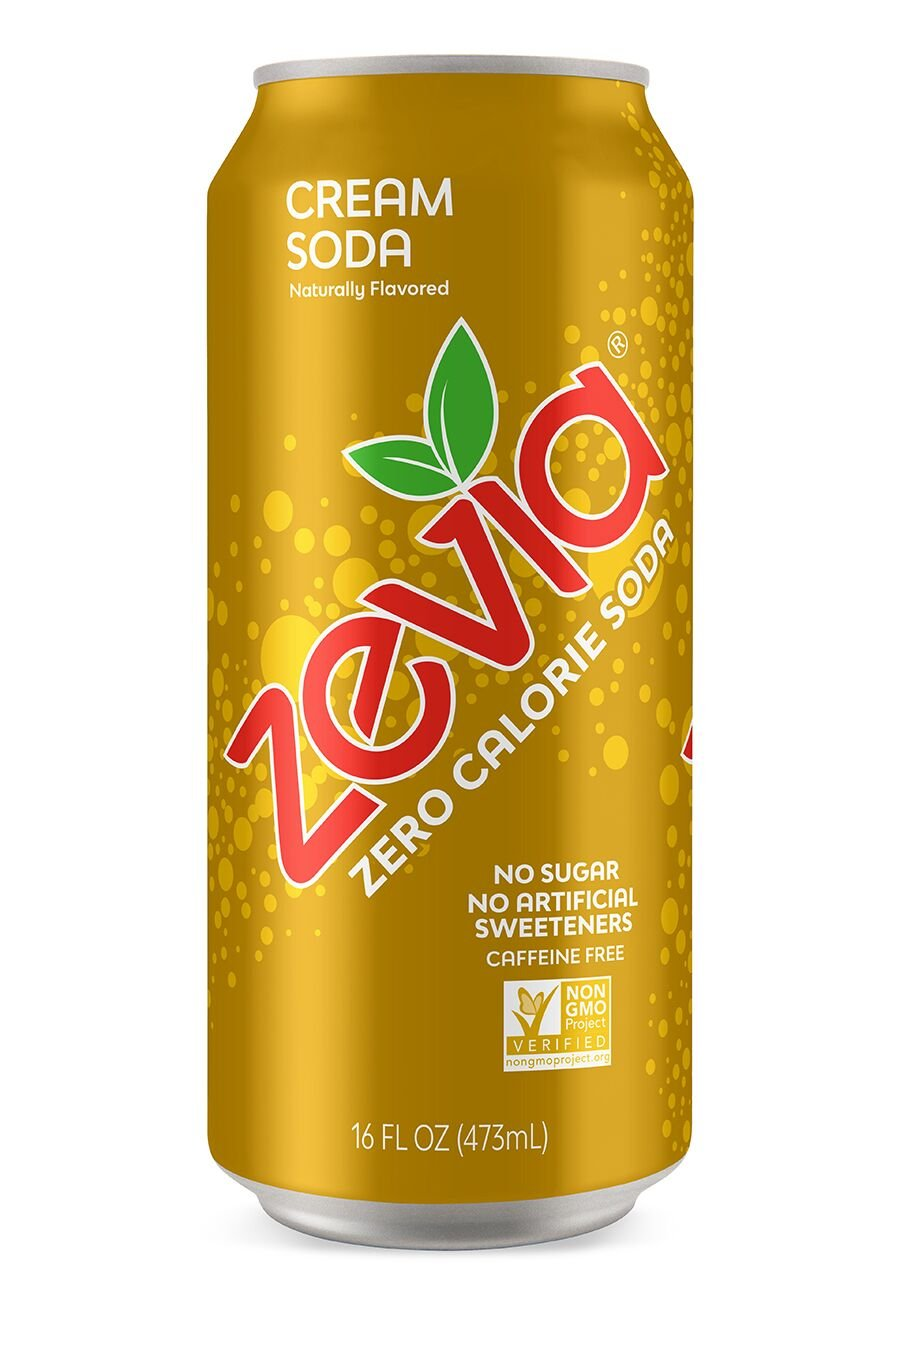 Zevia Cream Soda, 16 Ounce Can (12 Count) Zero Calories or Sugar, Naturally Sweetened, Carbonated Soda, Refreshing, Flavorful, and Tasty by Zevia (Image #1)